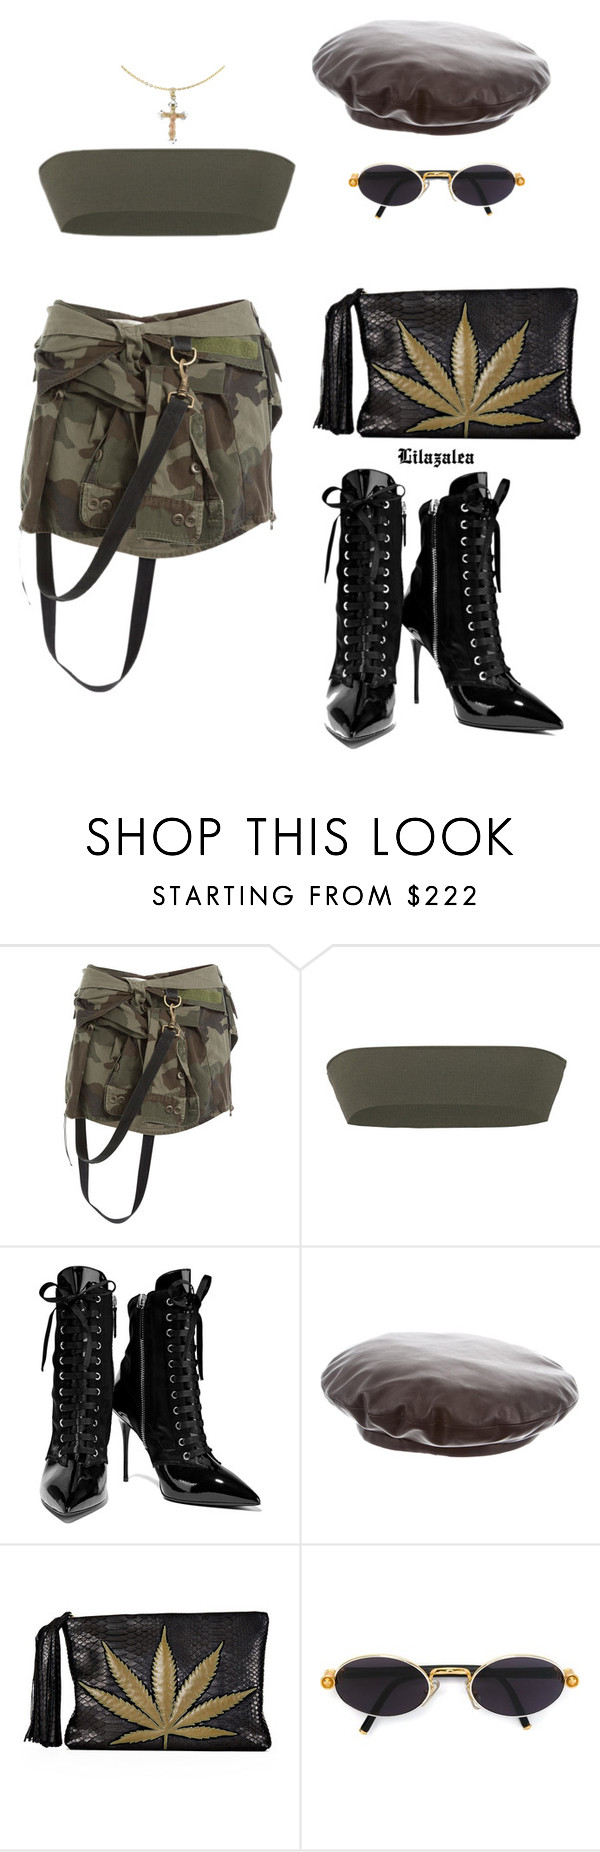 """""""Don't make me"""" by fashionoise ❤ liked on Polyvore featuring Faith Connexion, Versace, Giuseppe Zanotti, Gucci, Jacquie Aiche, Gianfranco Ferré and Cross"""